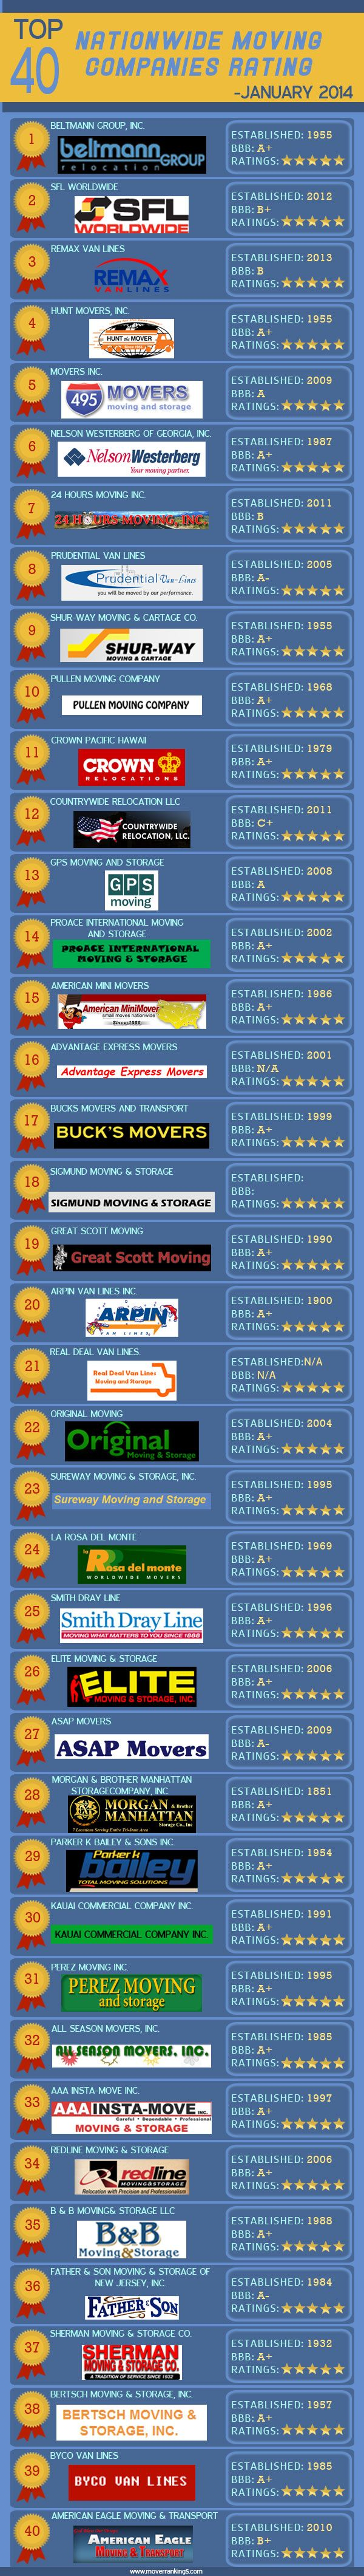 The Nationalwide best moving company for December 2013 is here at mover rankings. Based on the customer ratings, reviews and credentials top moving co